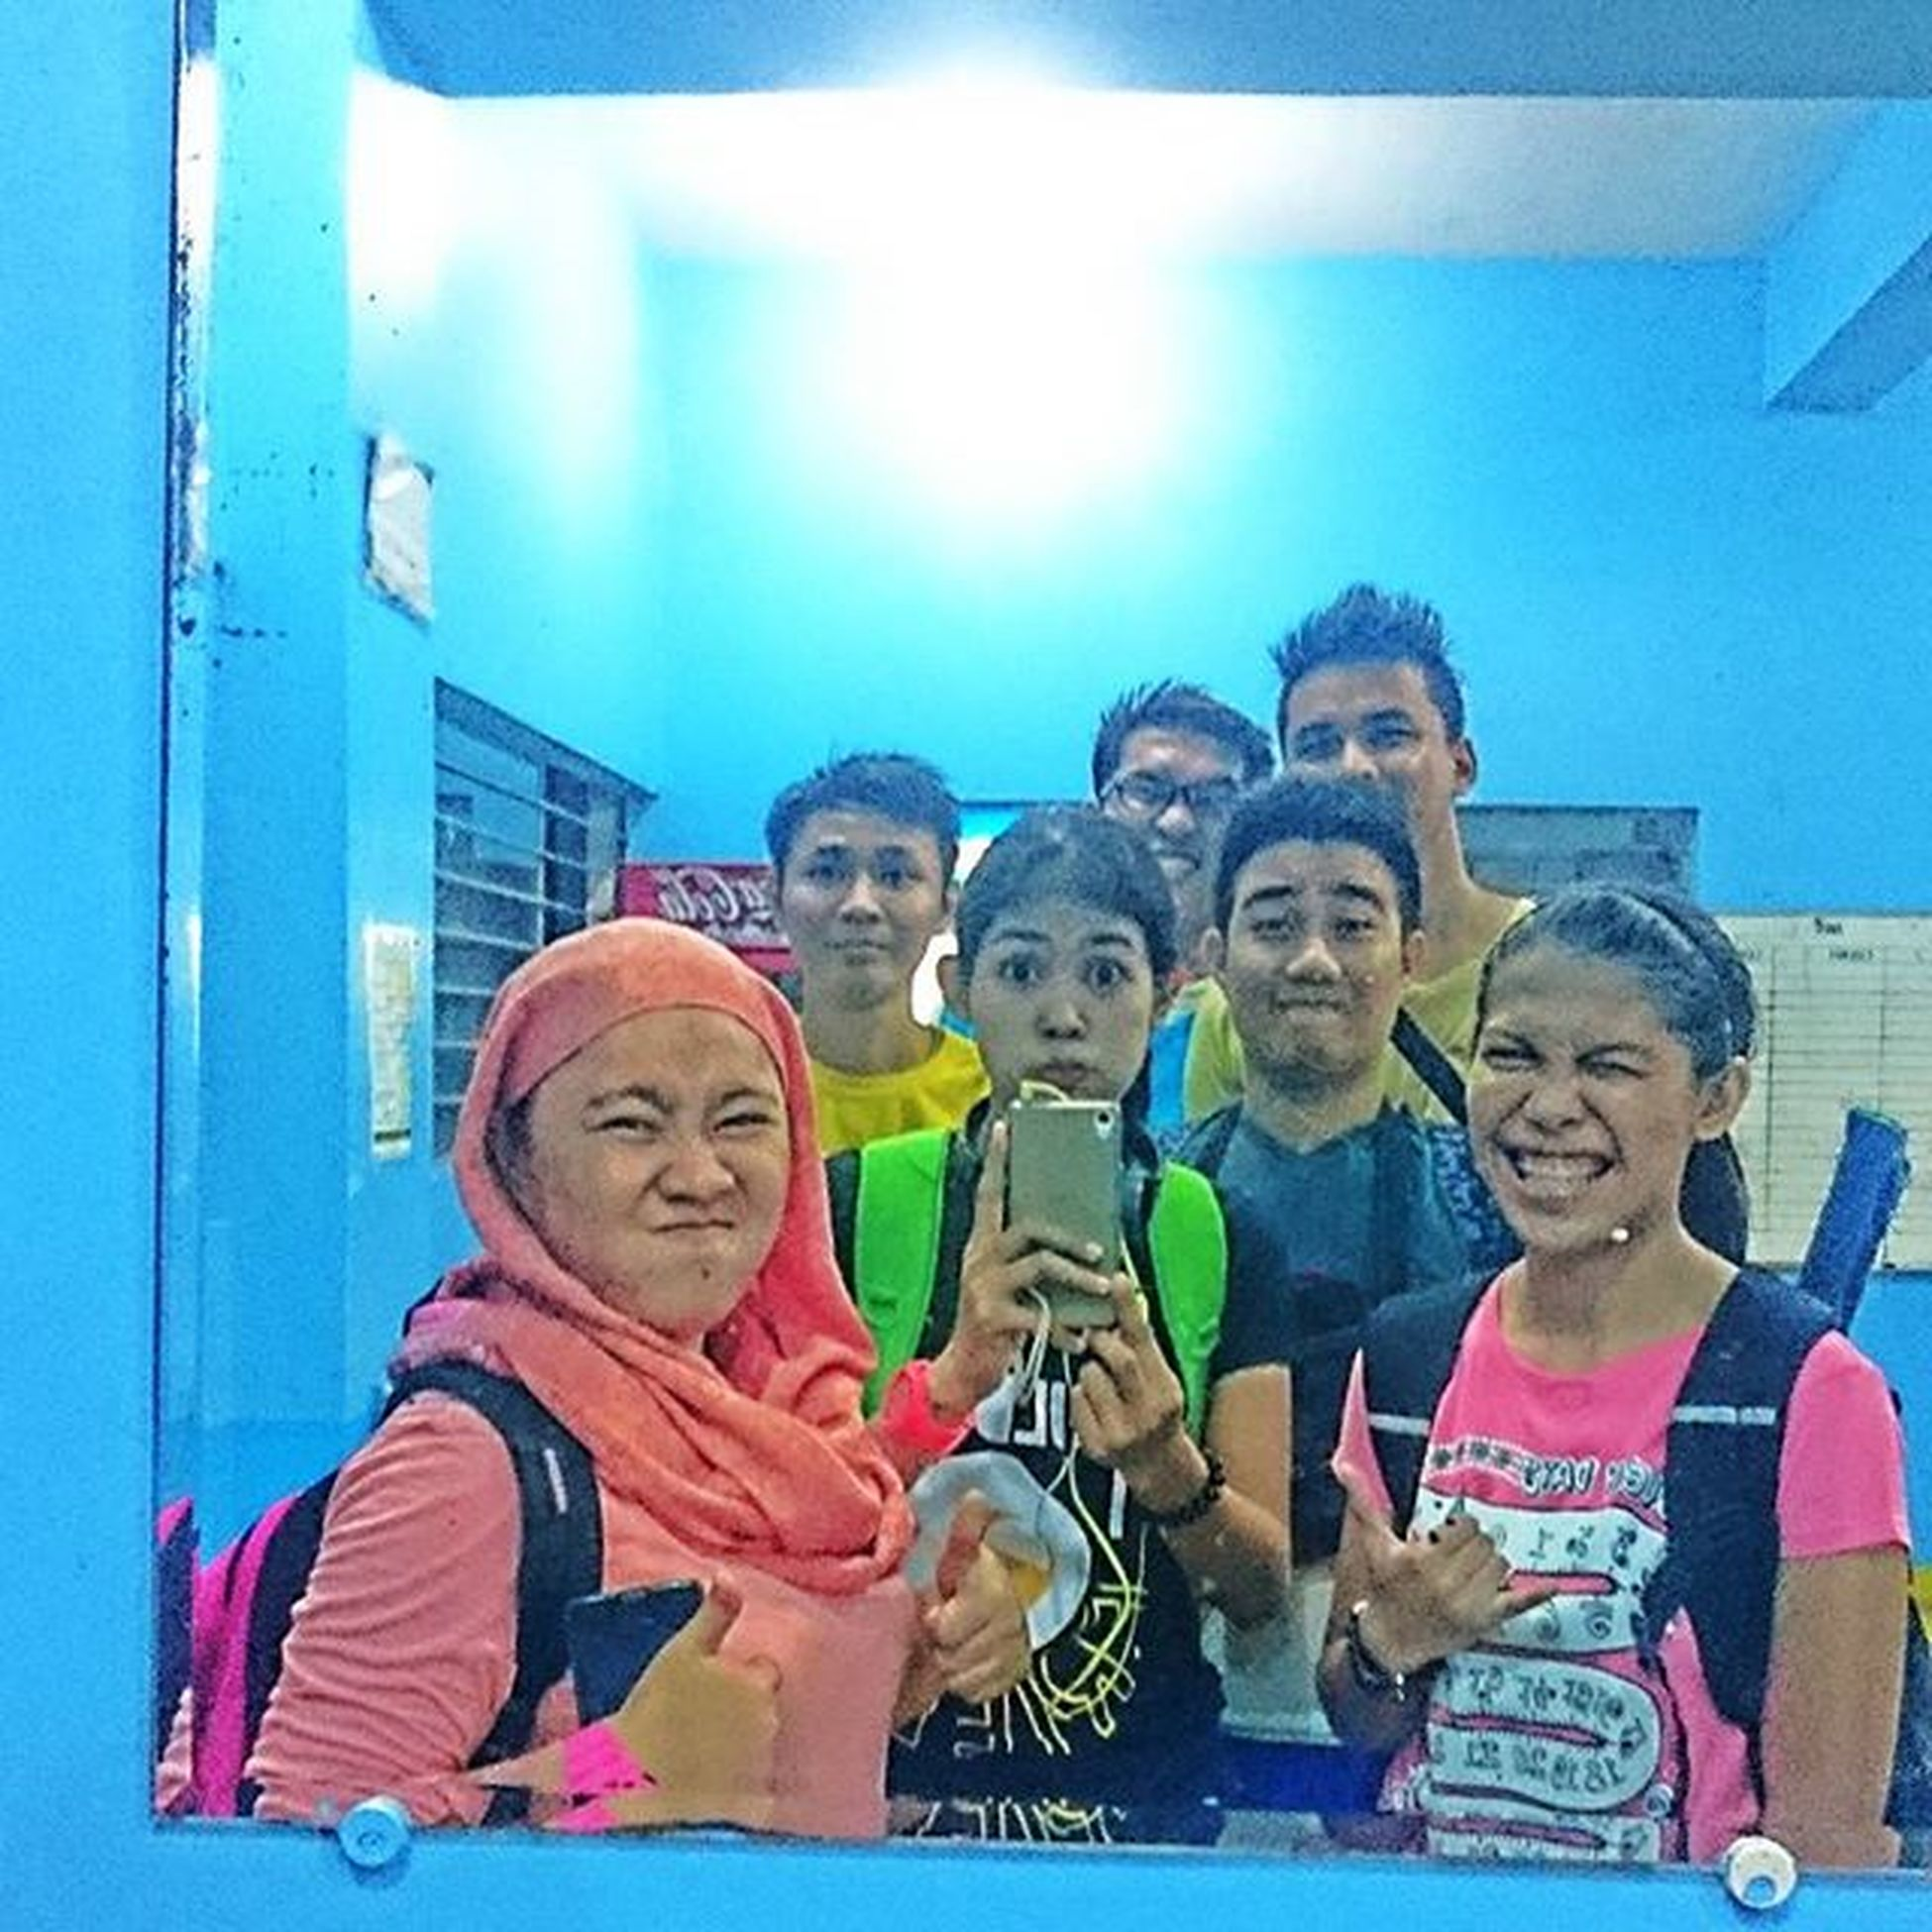 31st of July 2015 despite of heavy rain, we play. It's time for shuttleflicks, after a long rally of shuttlecock! Latepost Mirrorgroufie Volanotormentone Smashday Shutterflicks Sweatsmash Fairplay Sonyverse SonyGLens XPERIA ICAN Peskies 👍👌😁😊😄😉📷